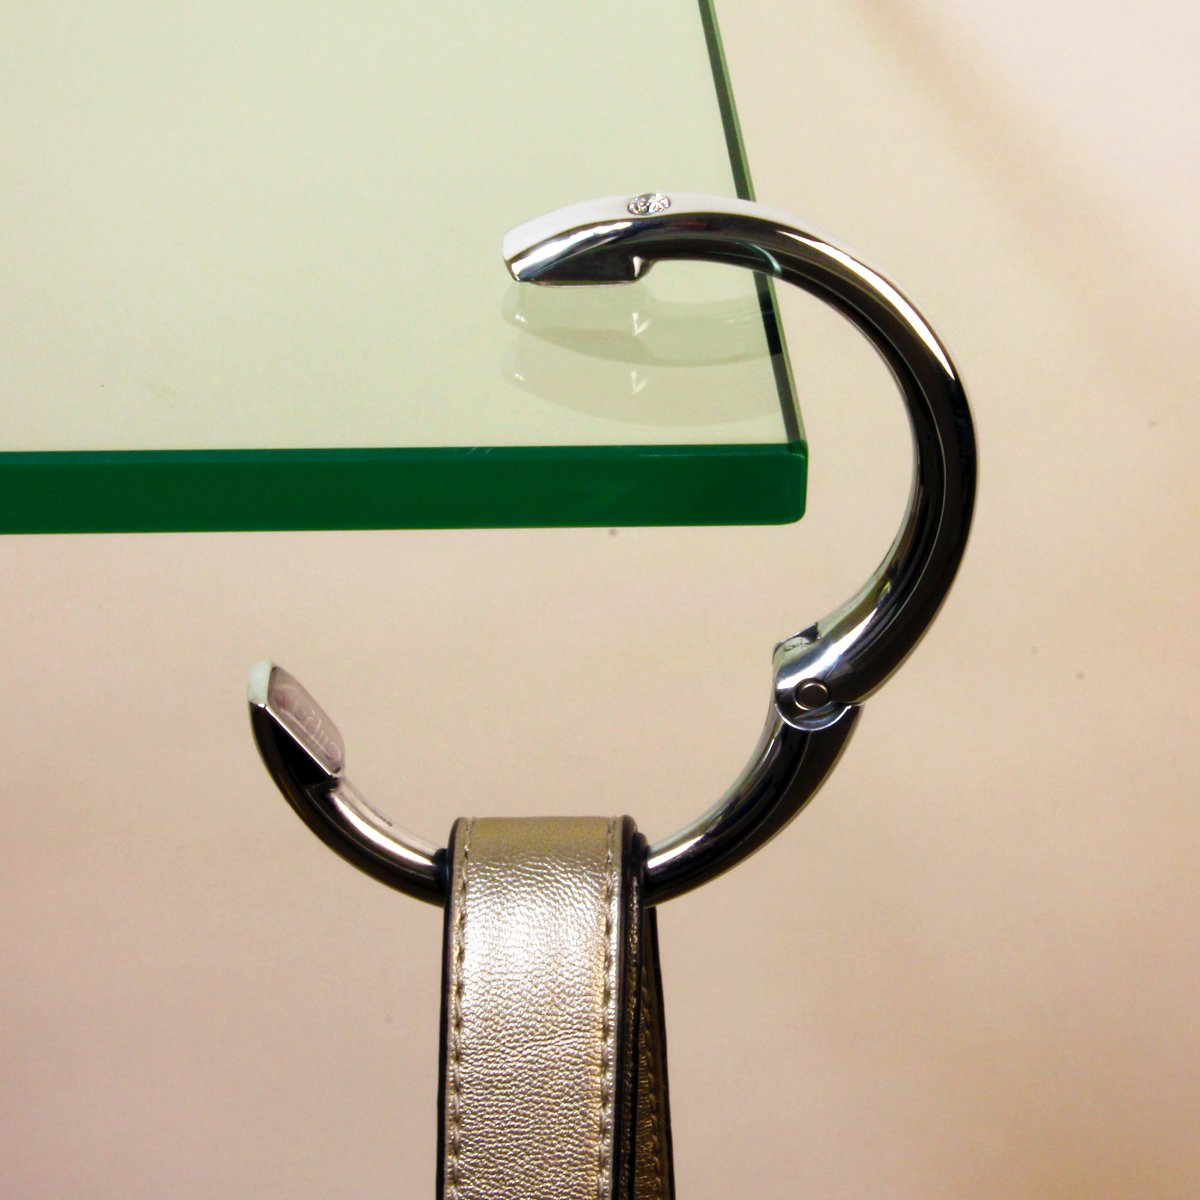 A photo of a Clipa holding up a purse on a glass table.